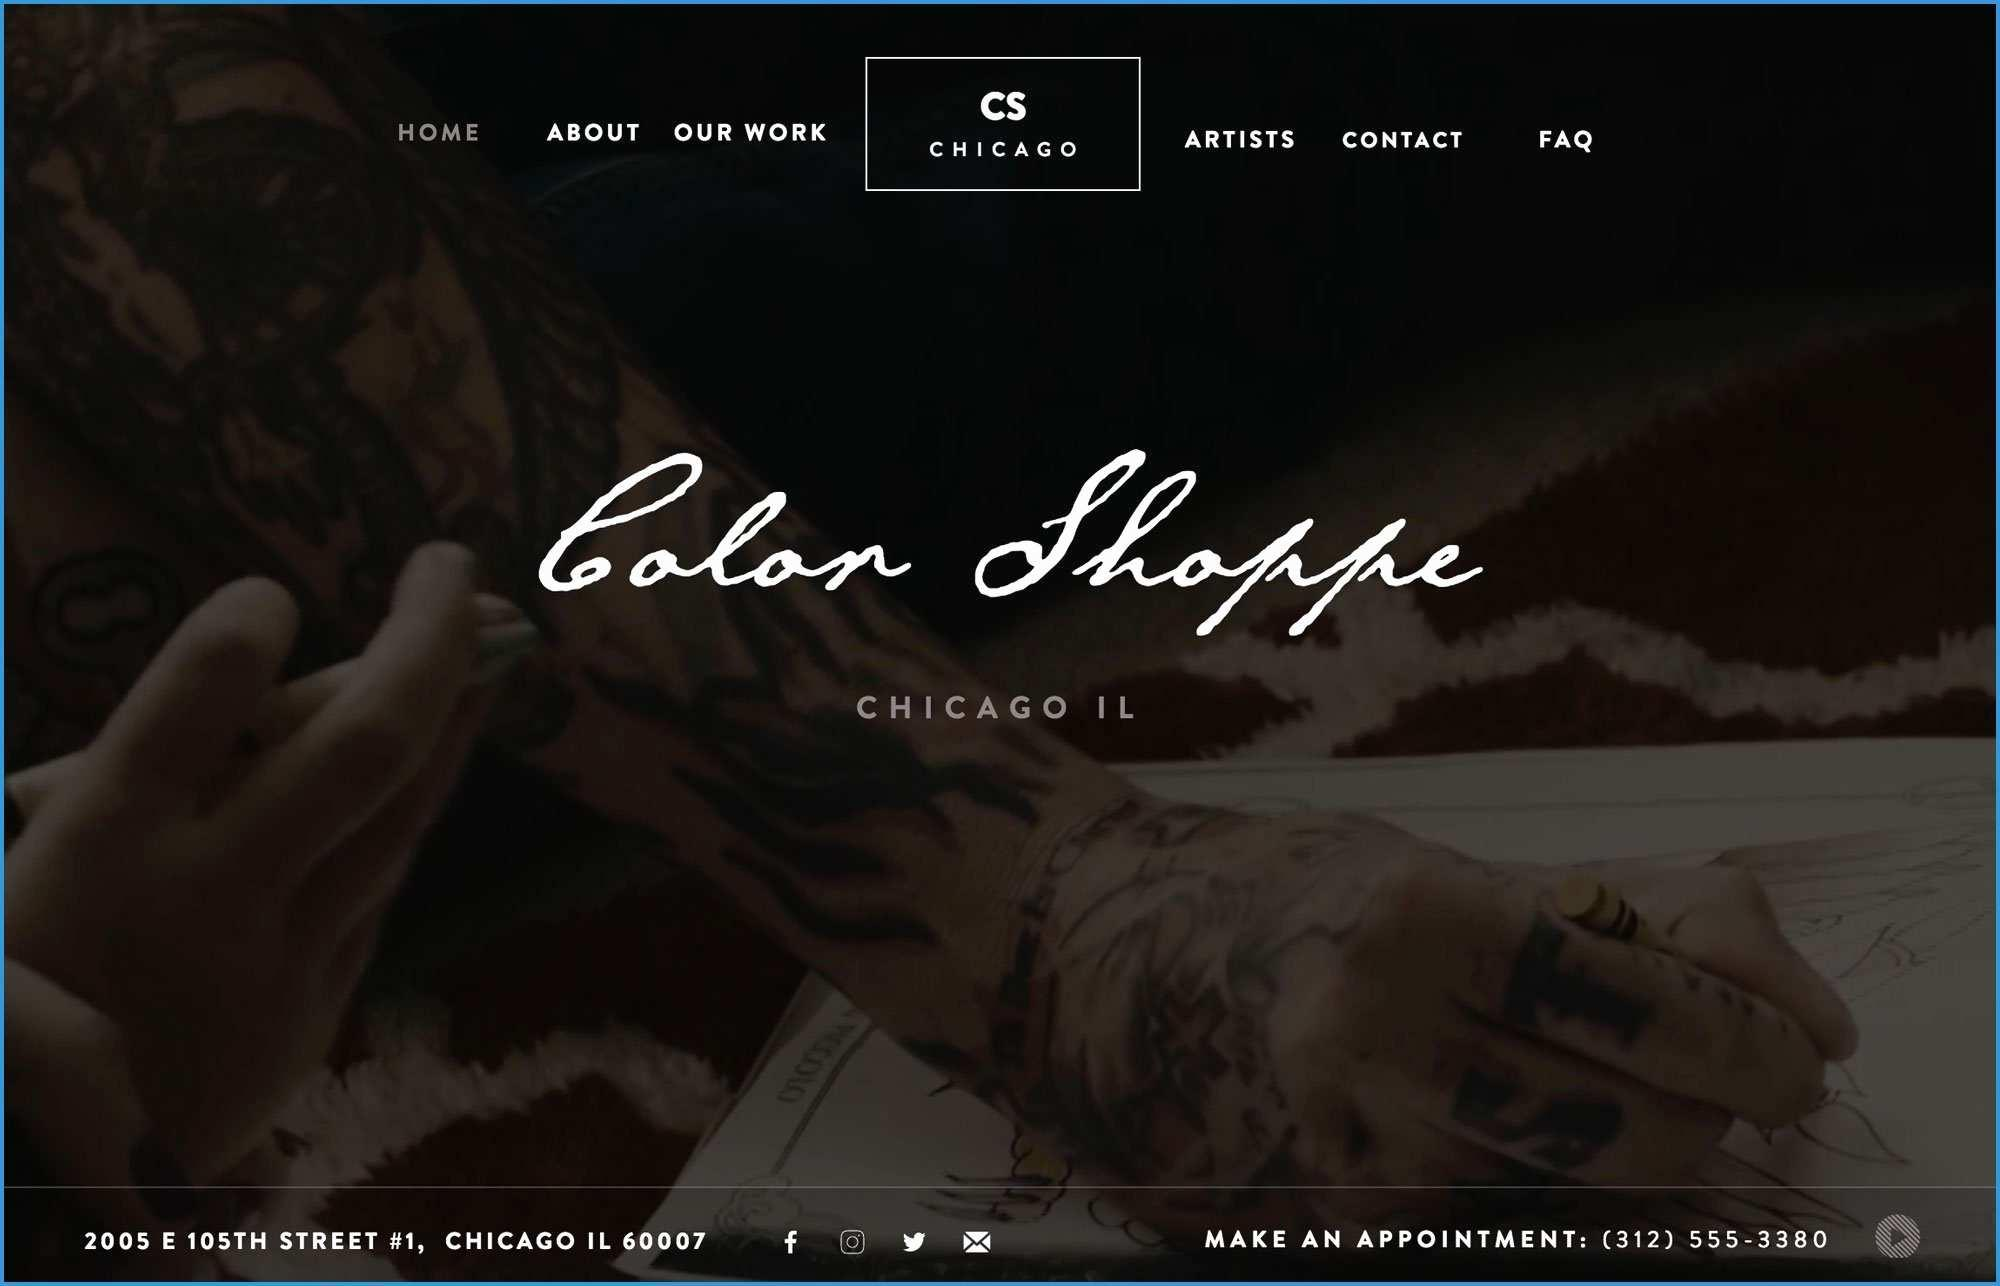 Free Adobe Muse Templates For Photographers